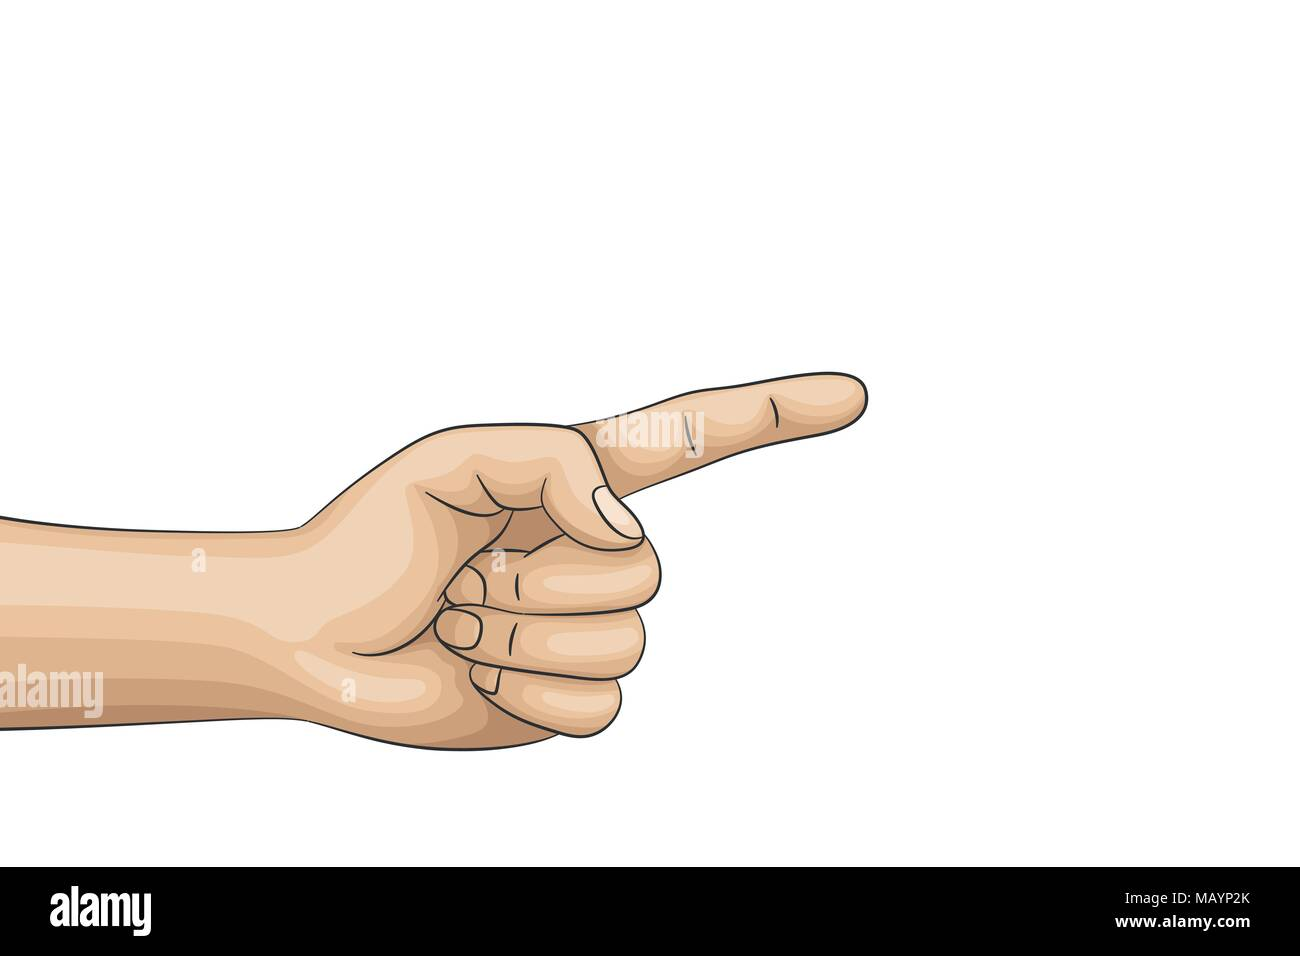 Someone points a finger at something.  - Stock Vector